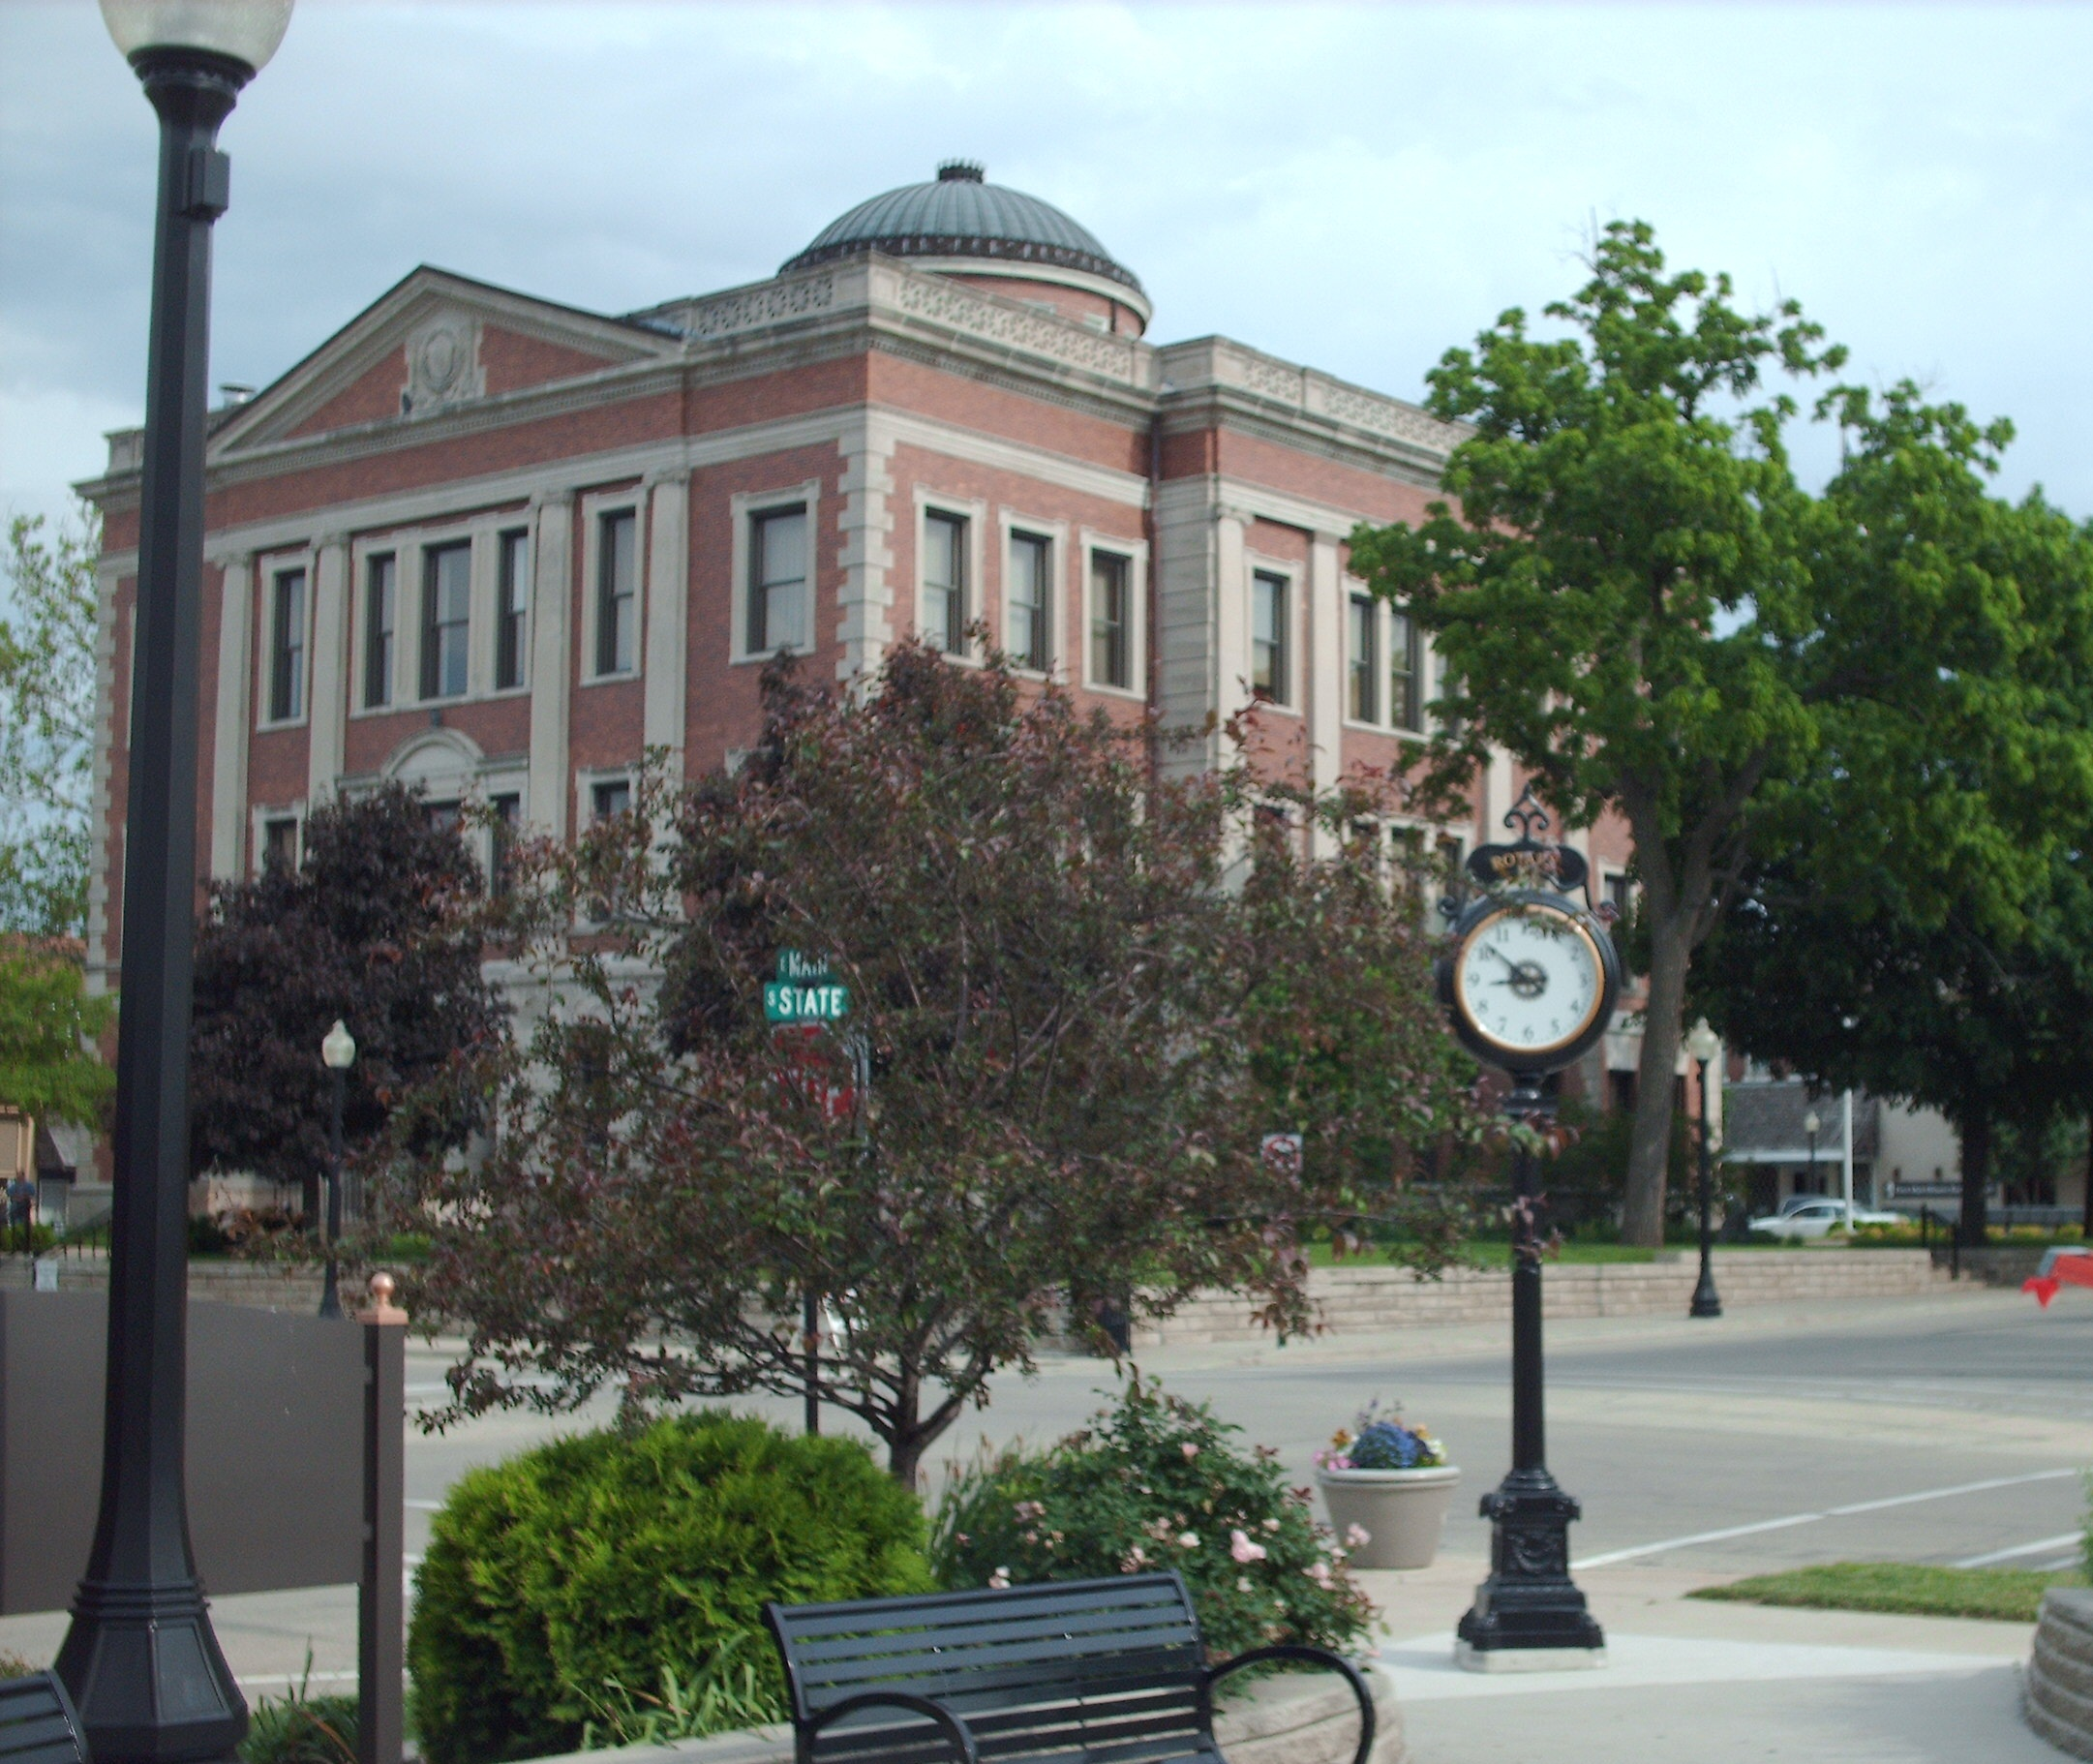 Downtown Courthouse Square